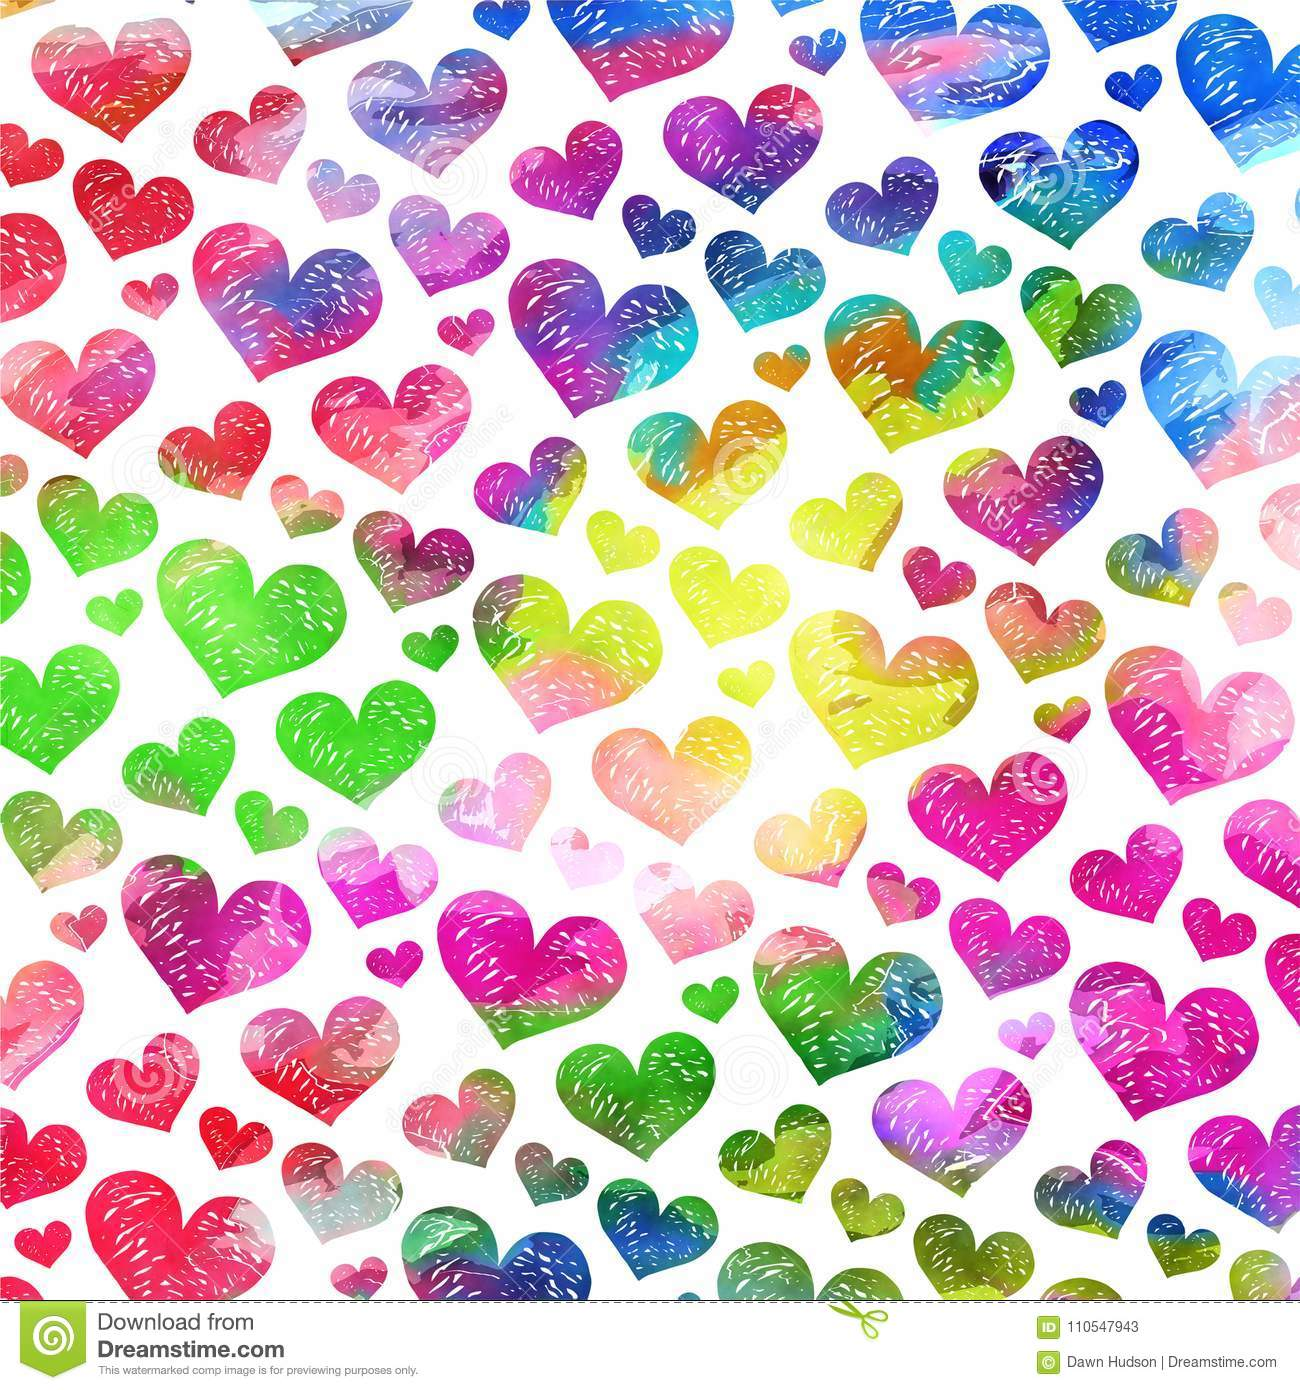 Artistic Watercolor Love Heart Background